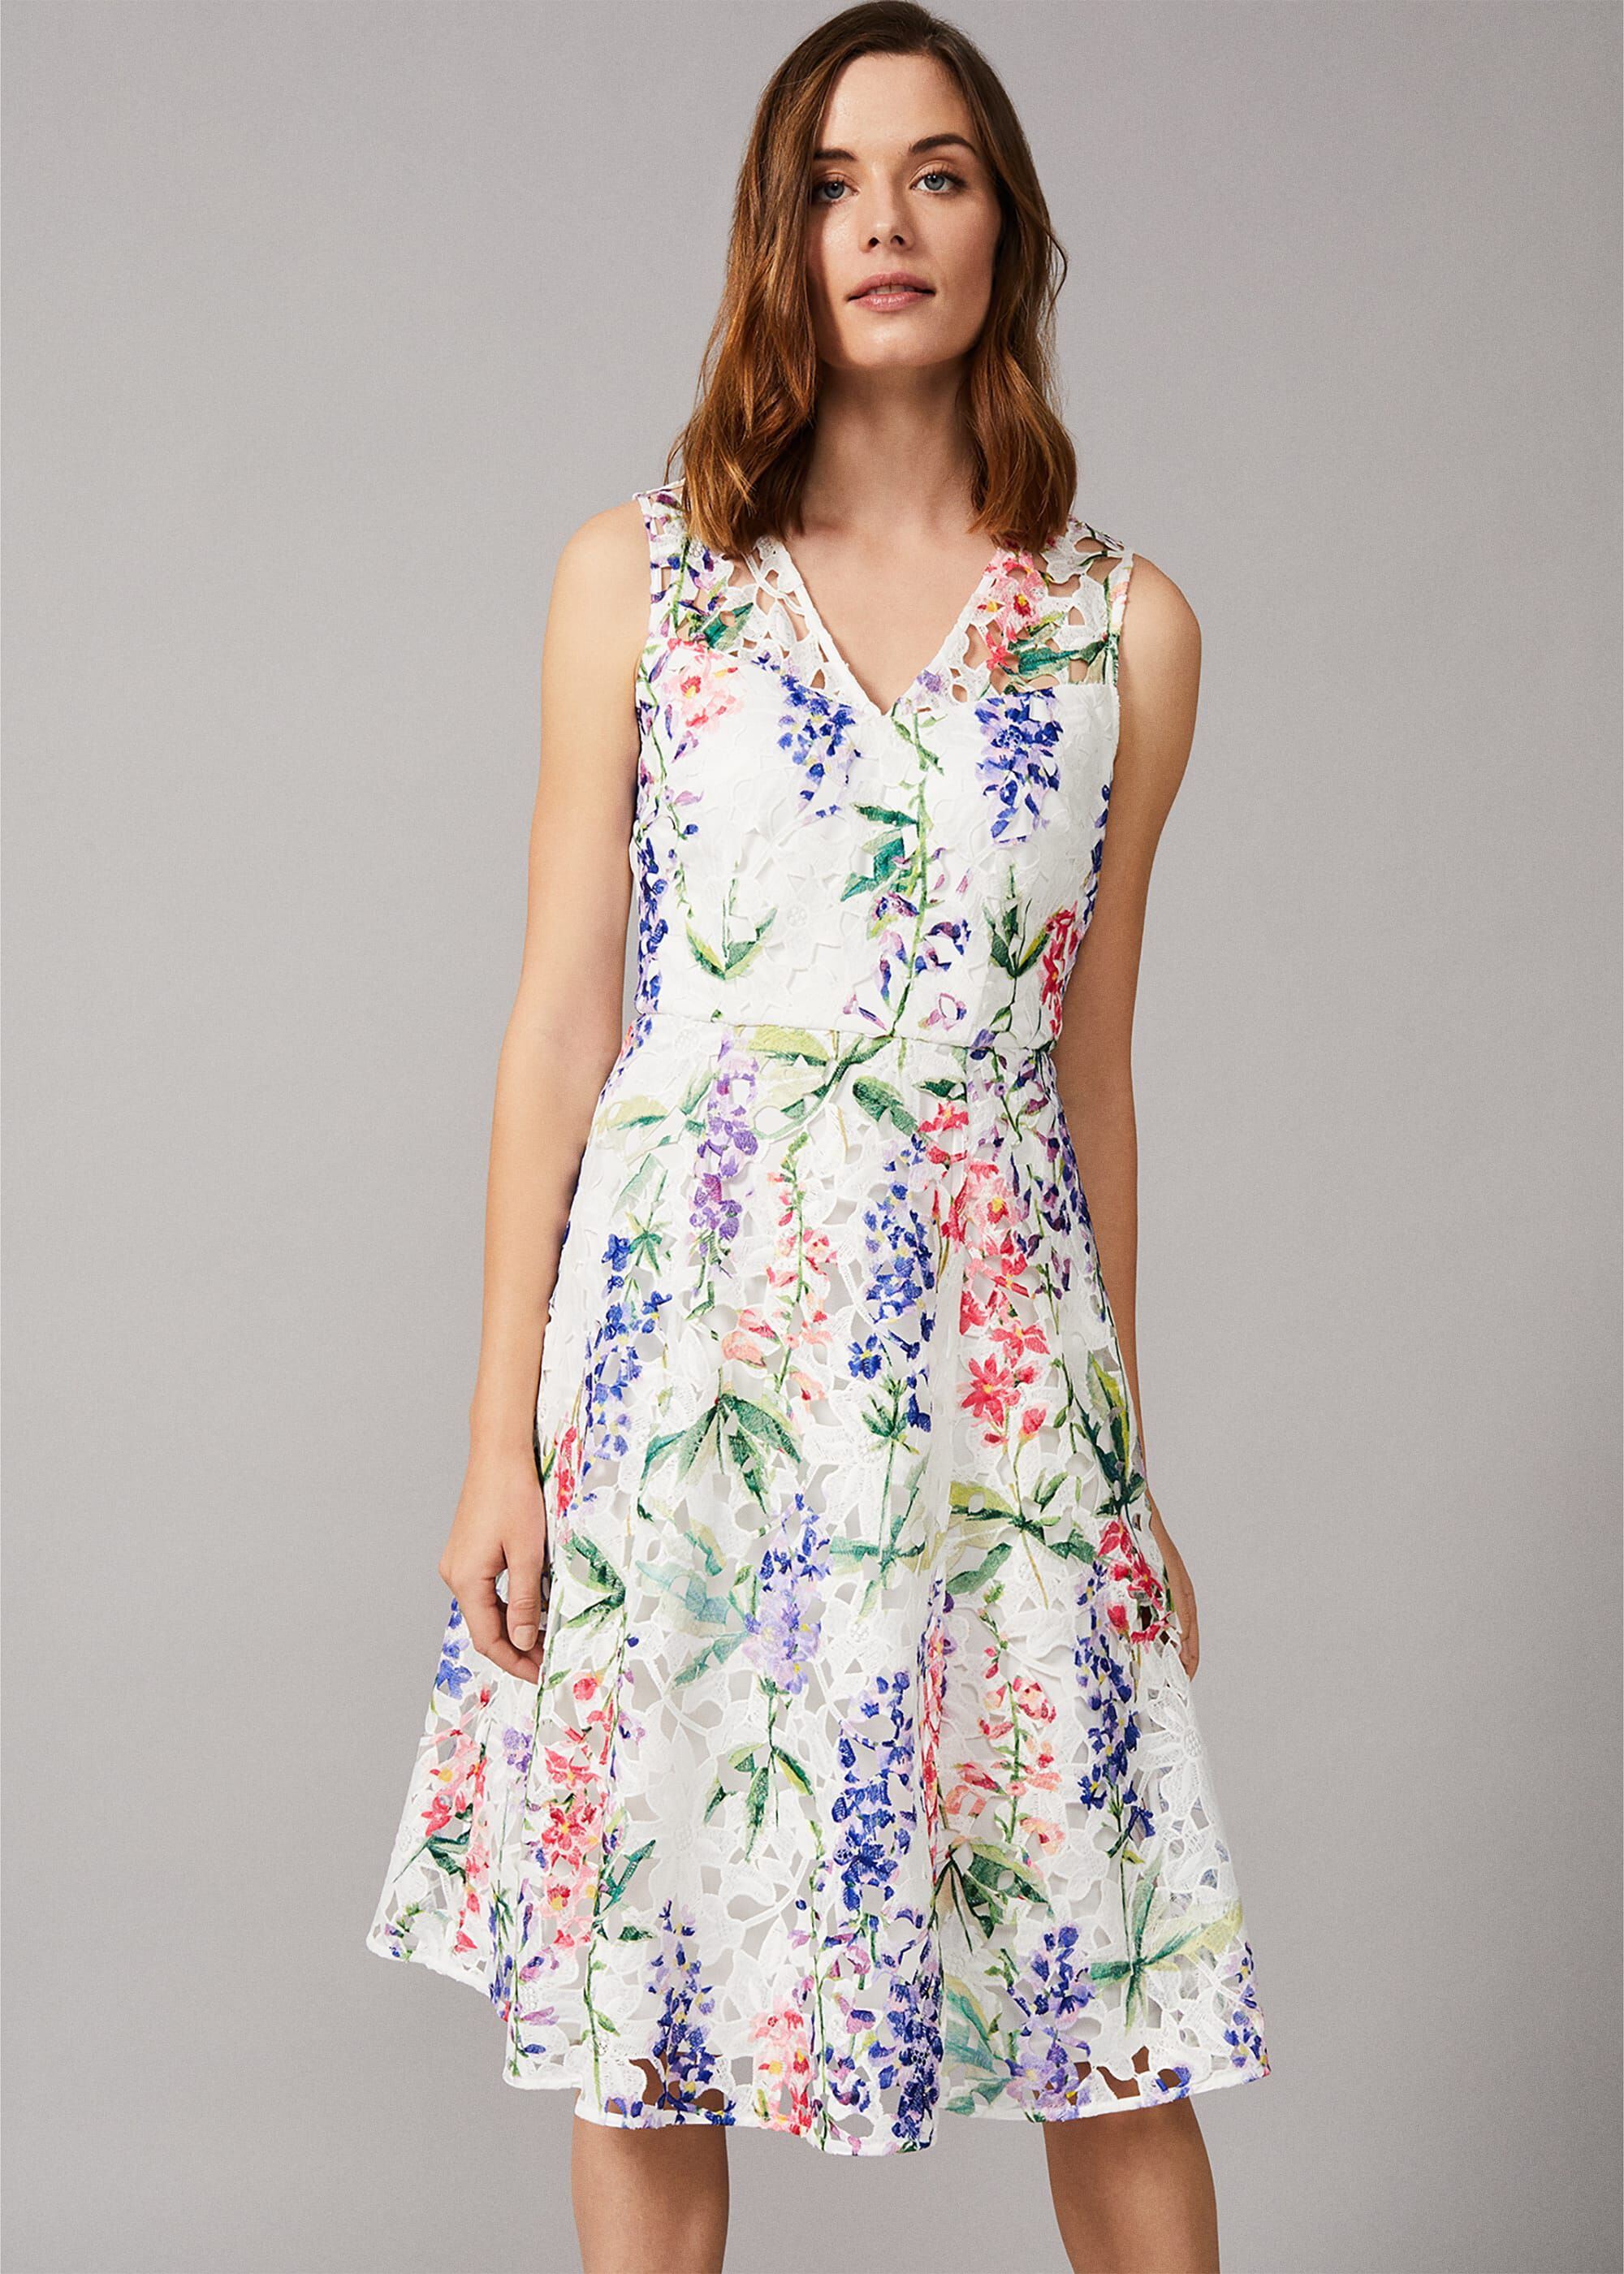 Phase Eight Lonnie Floral Fit And Flare Dress, Cream, Fit & Flare, Occasion Dress